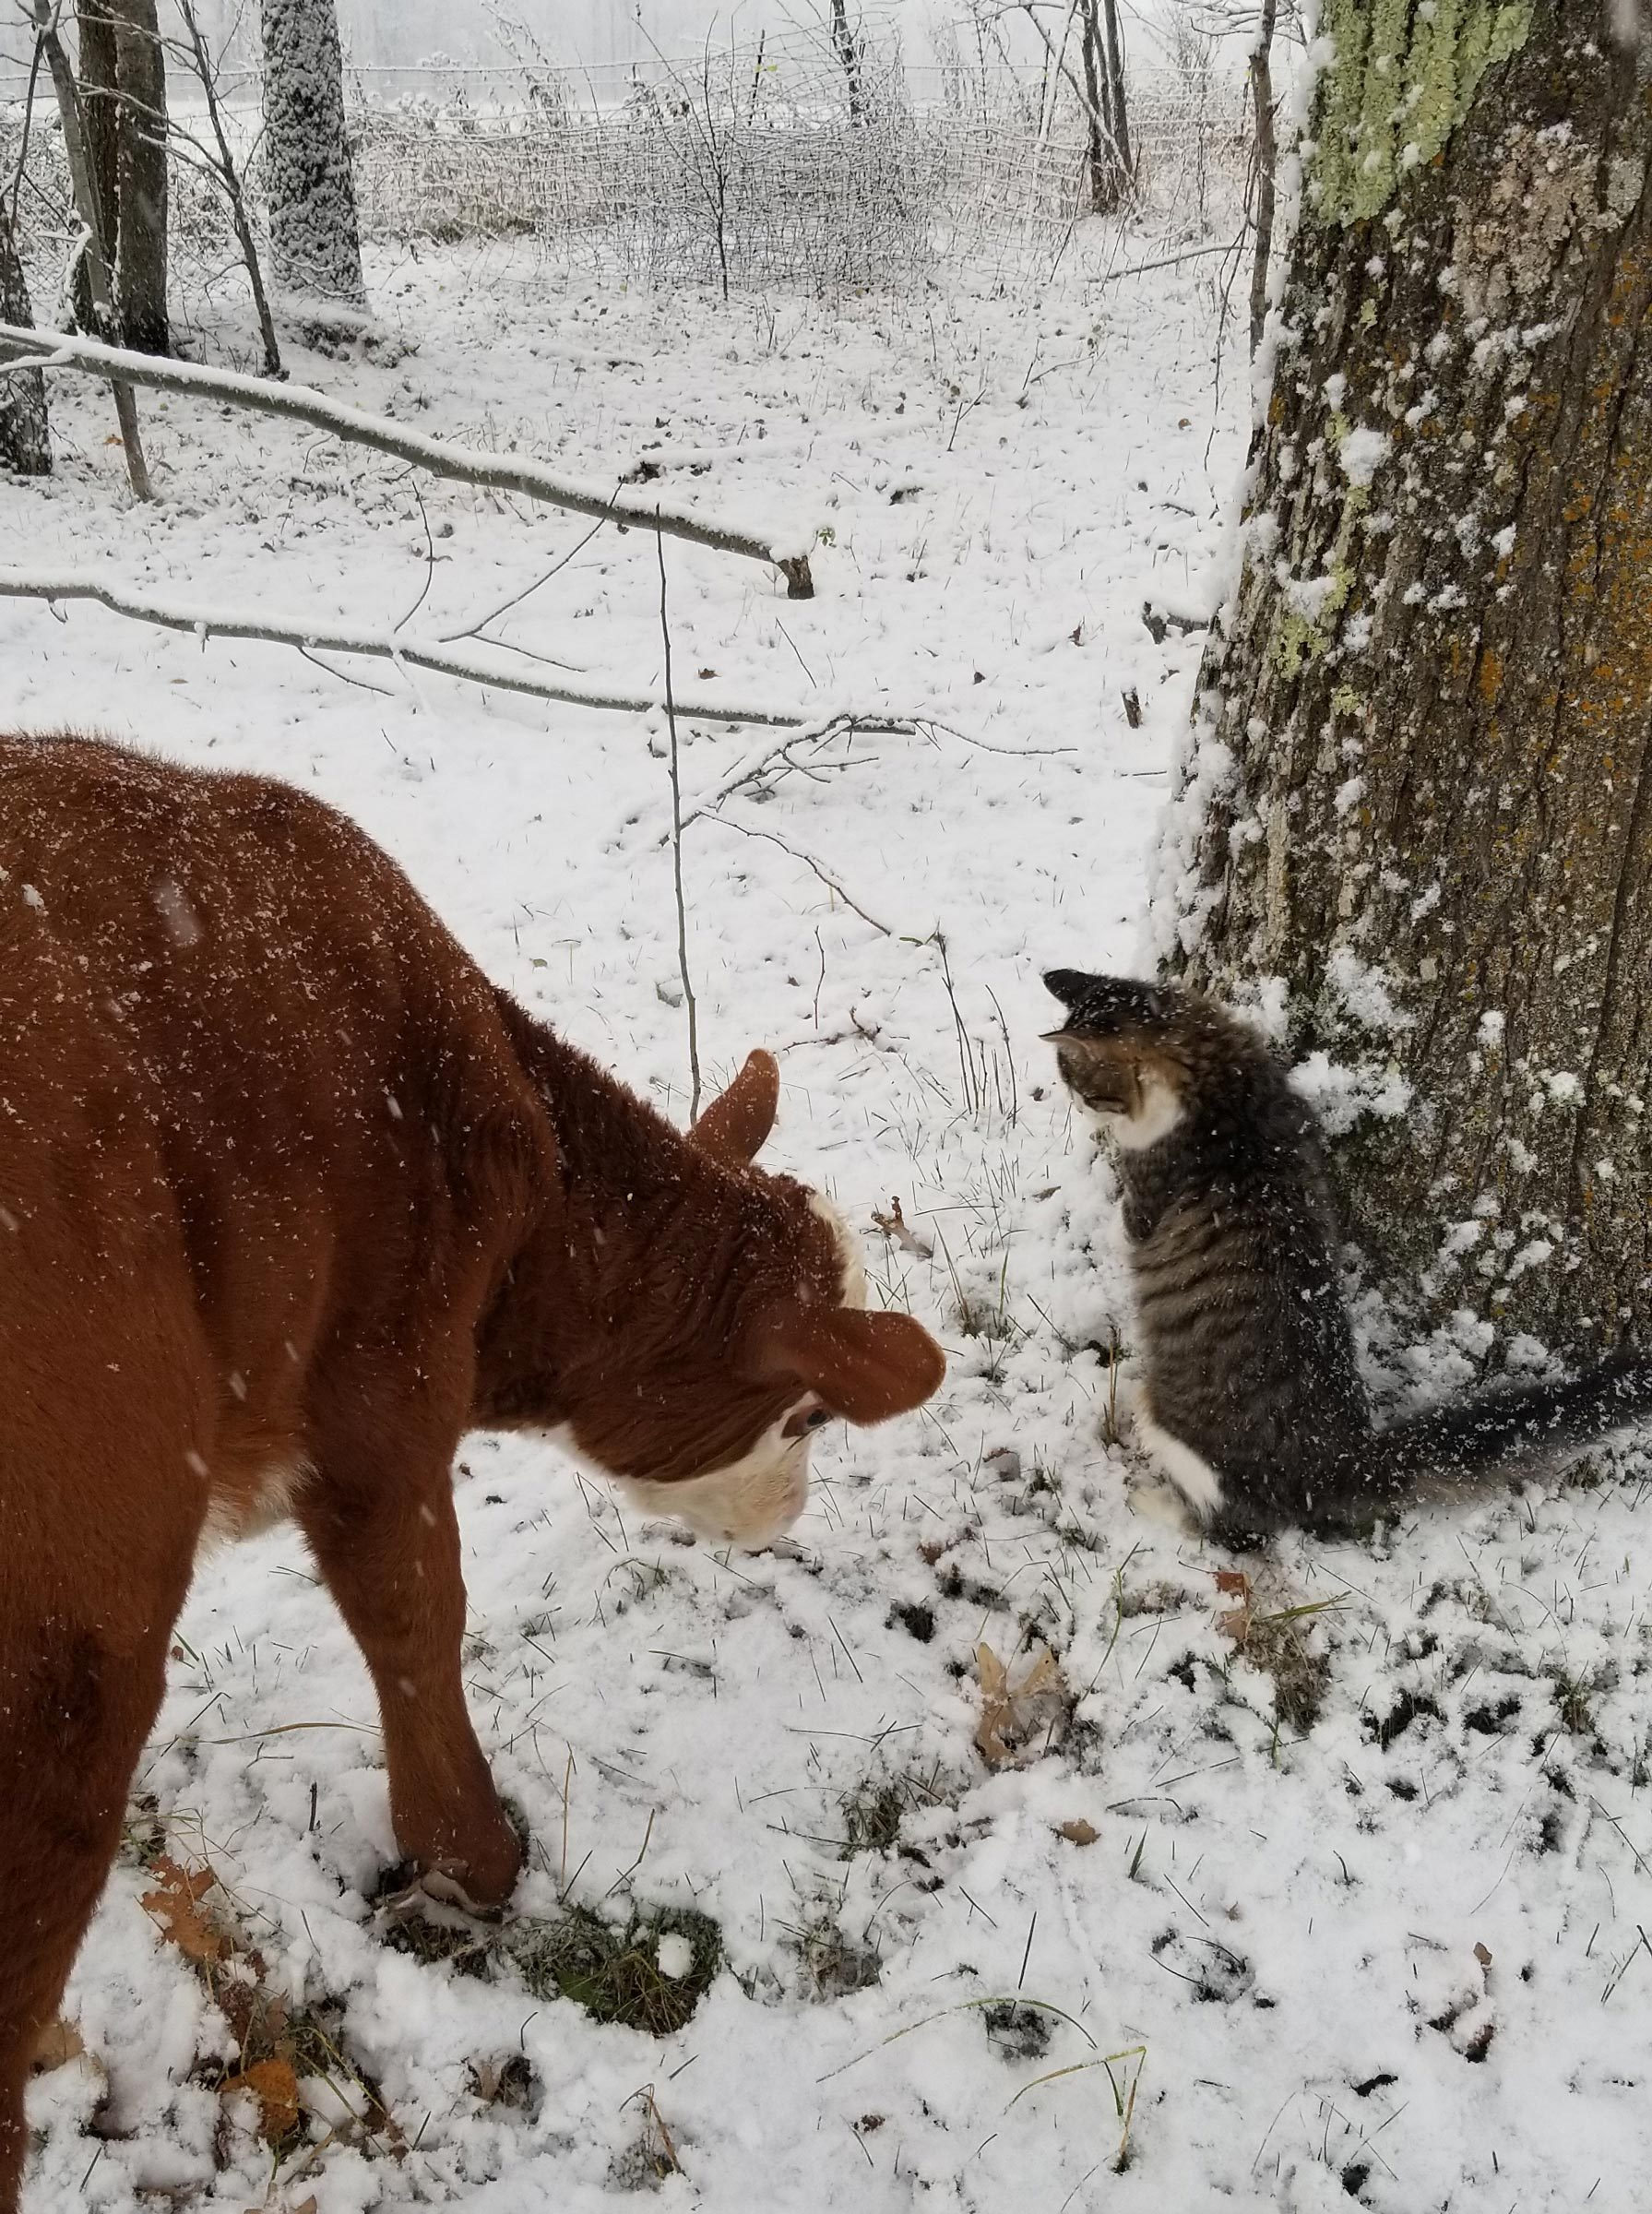 a cow and a cat inspect the snow on the ground